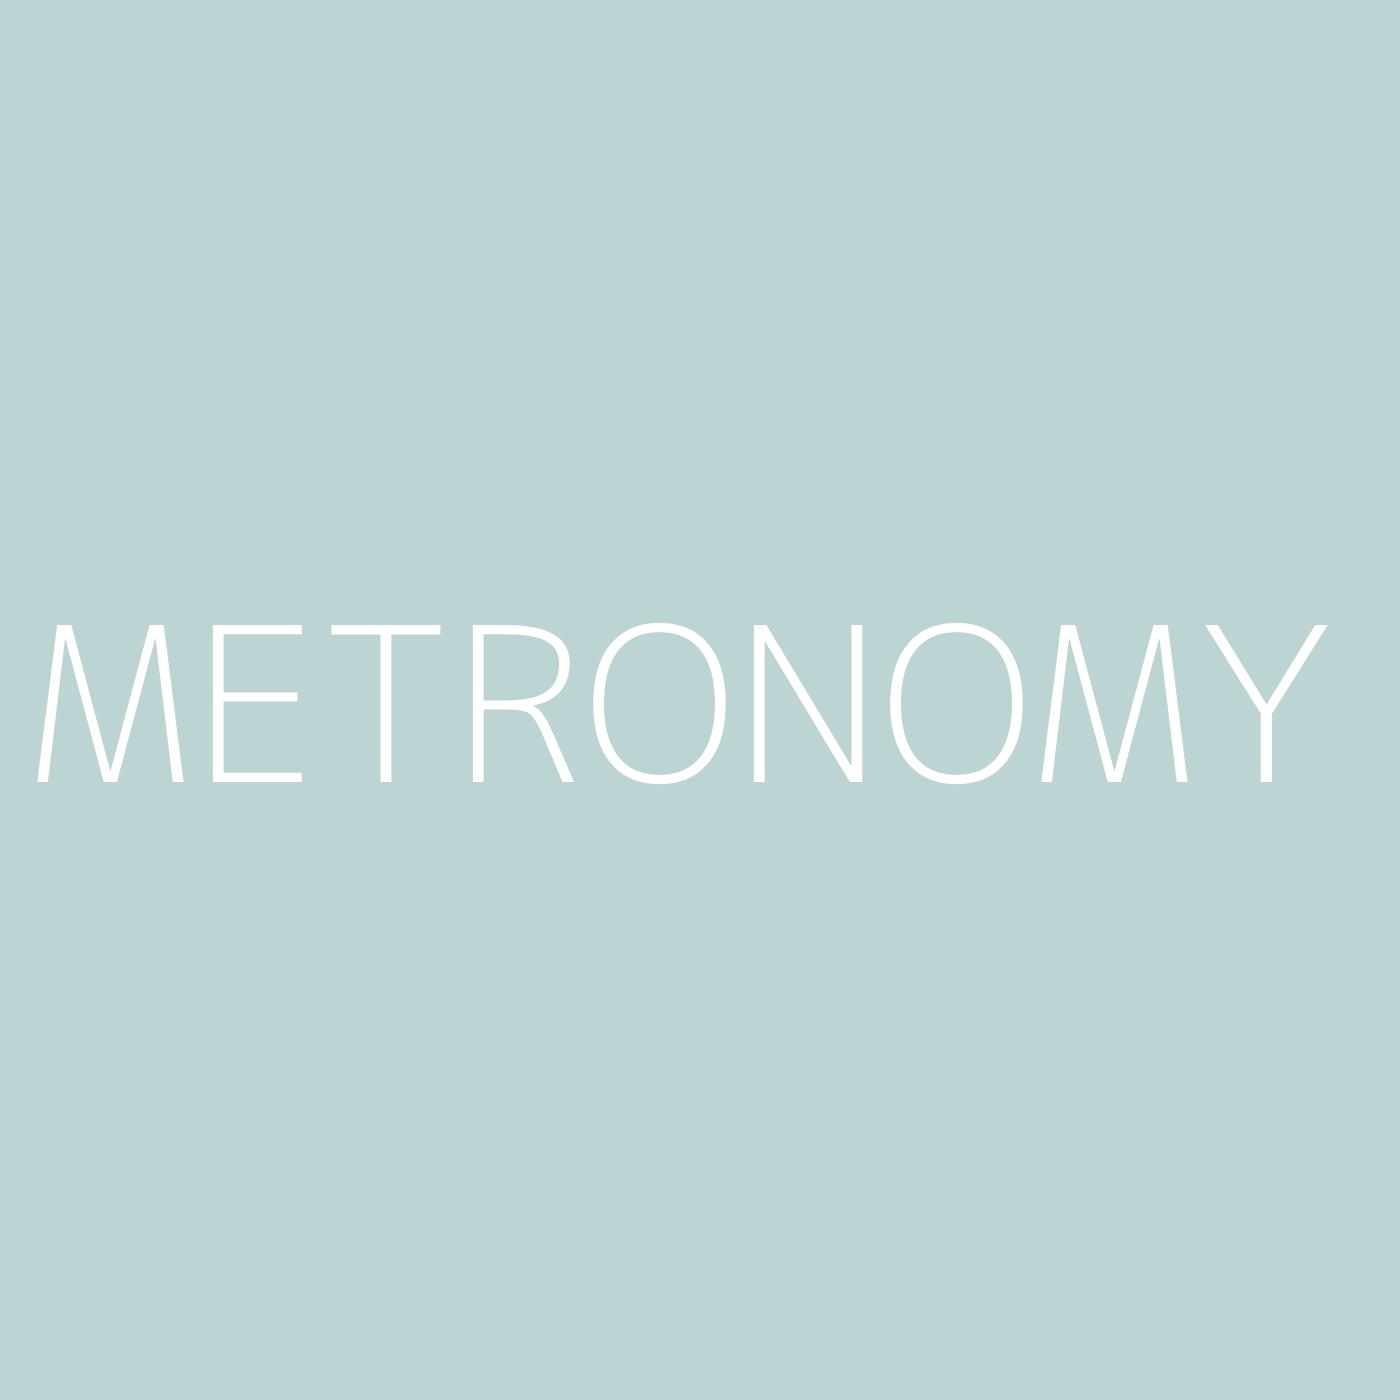 Metronomy Playlist Artwork